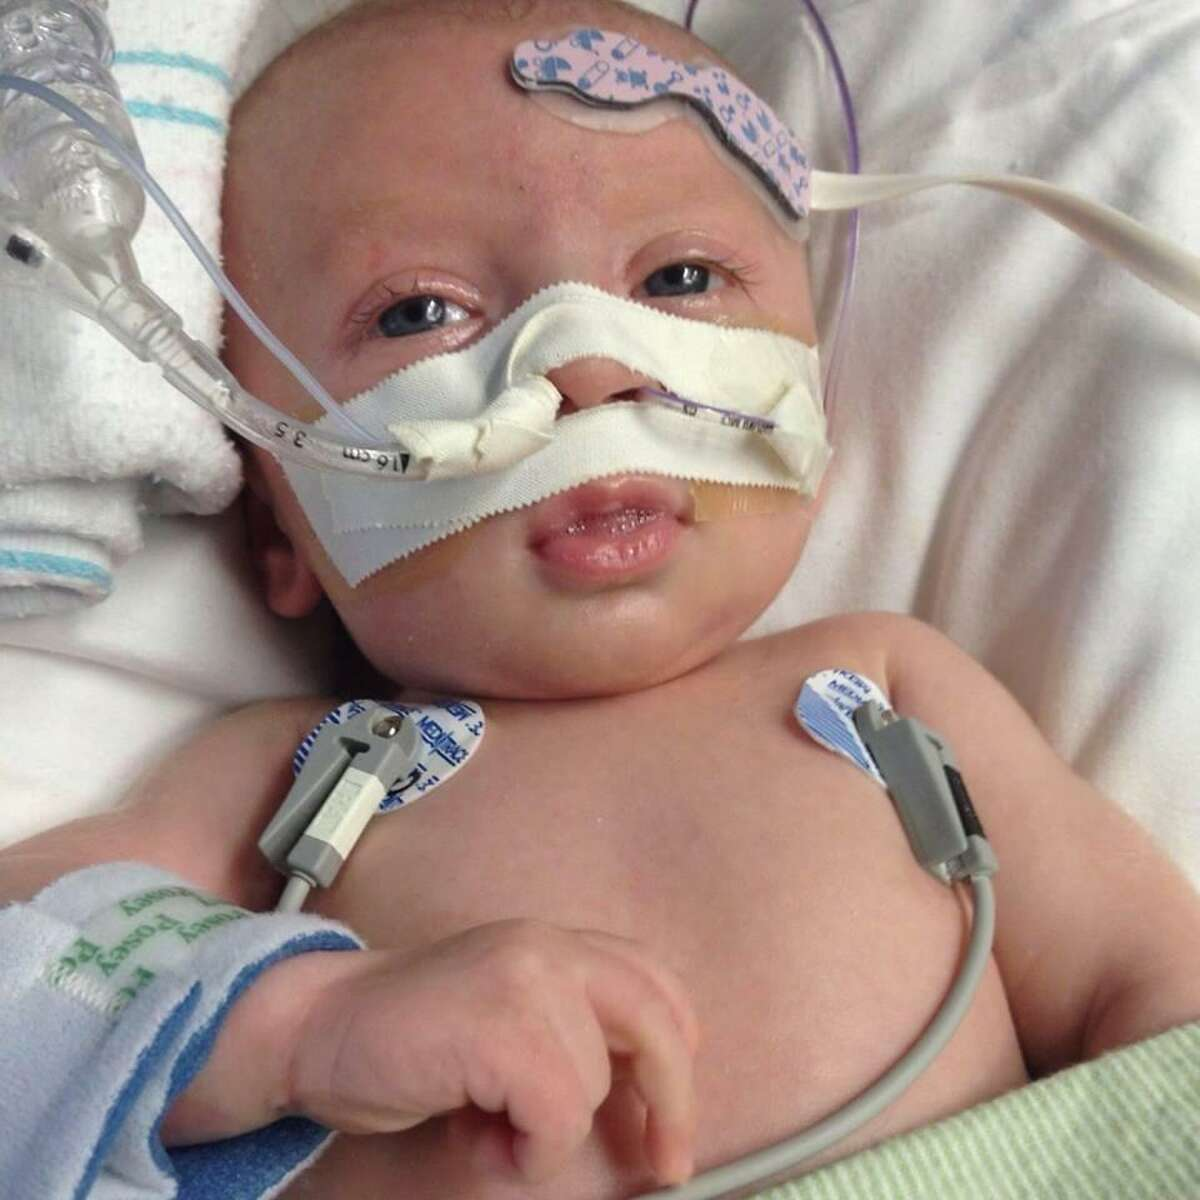 Jaxson Britt was born on Aug. 12 and since then, has remained at Texas Children's Hospital awaiting a heart transplant. A benefit is being held to cover medical expenses on Nov. 23.